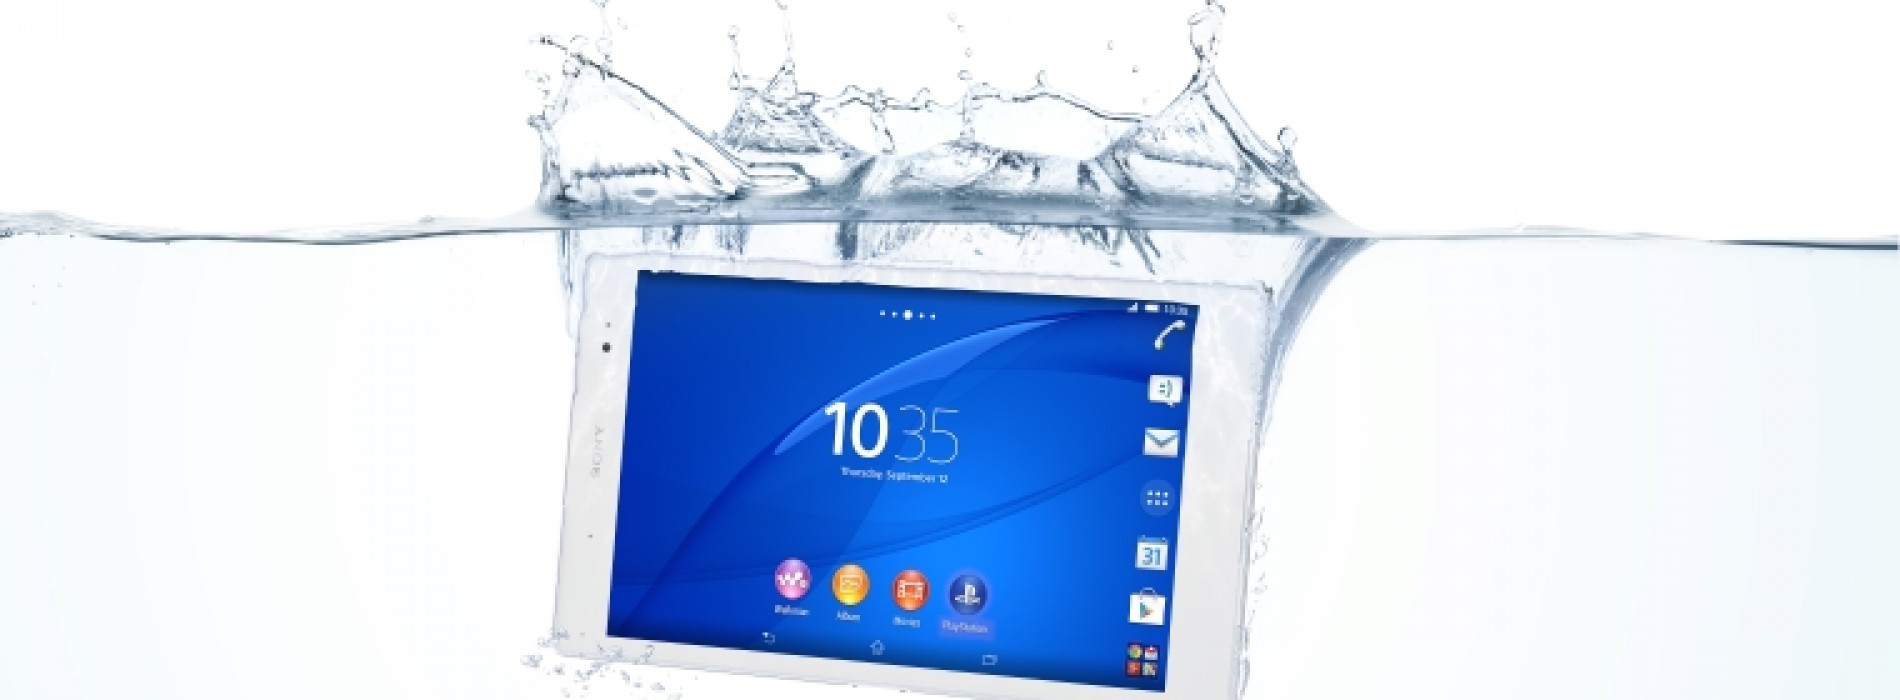 sony xperia z3 tablet compact review table of contents 1 sony xperia